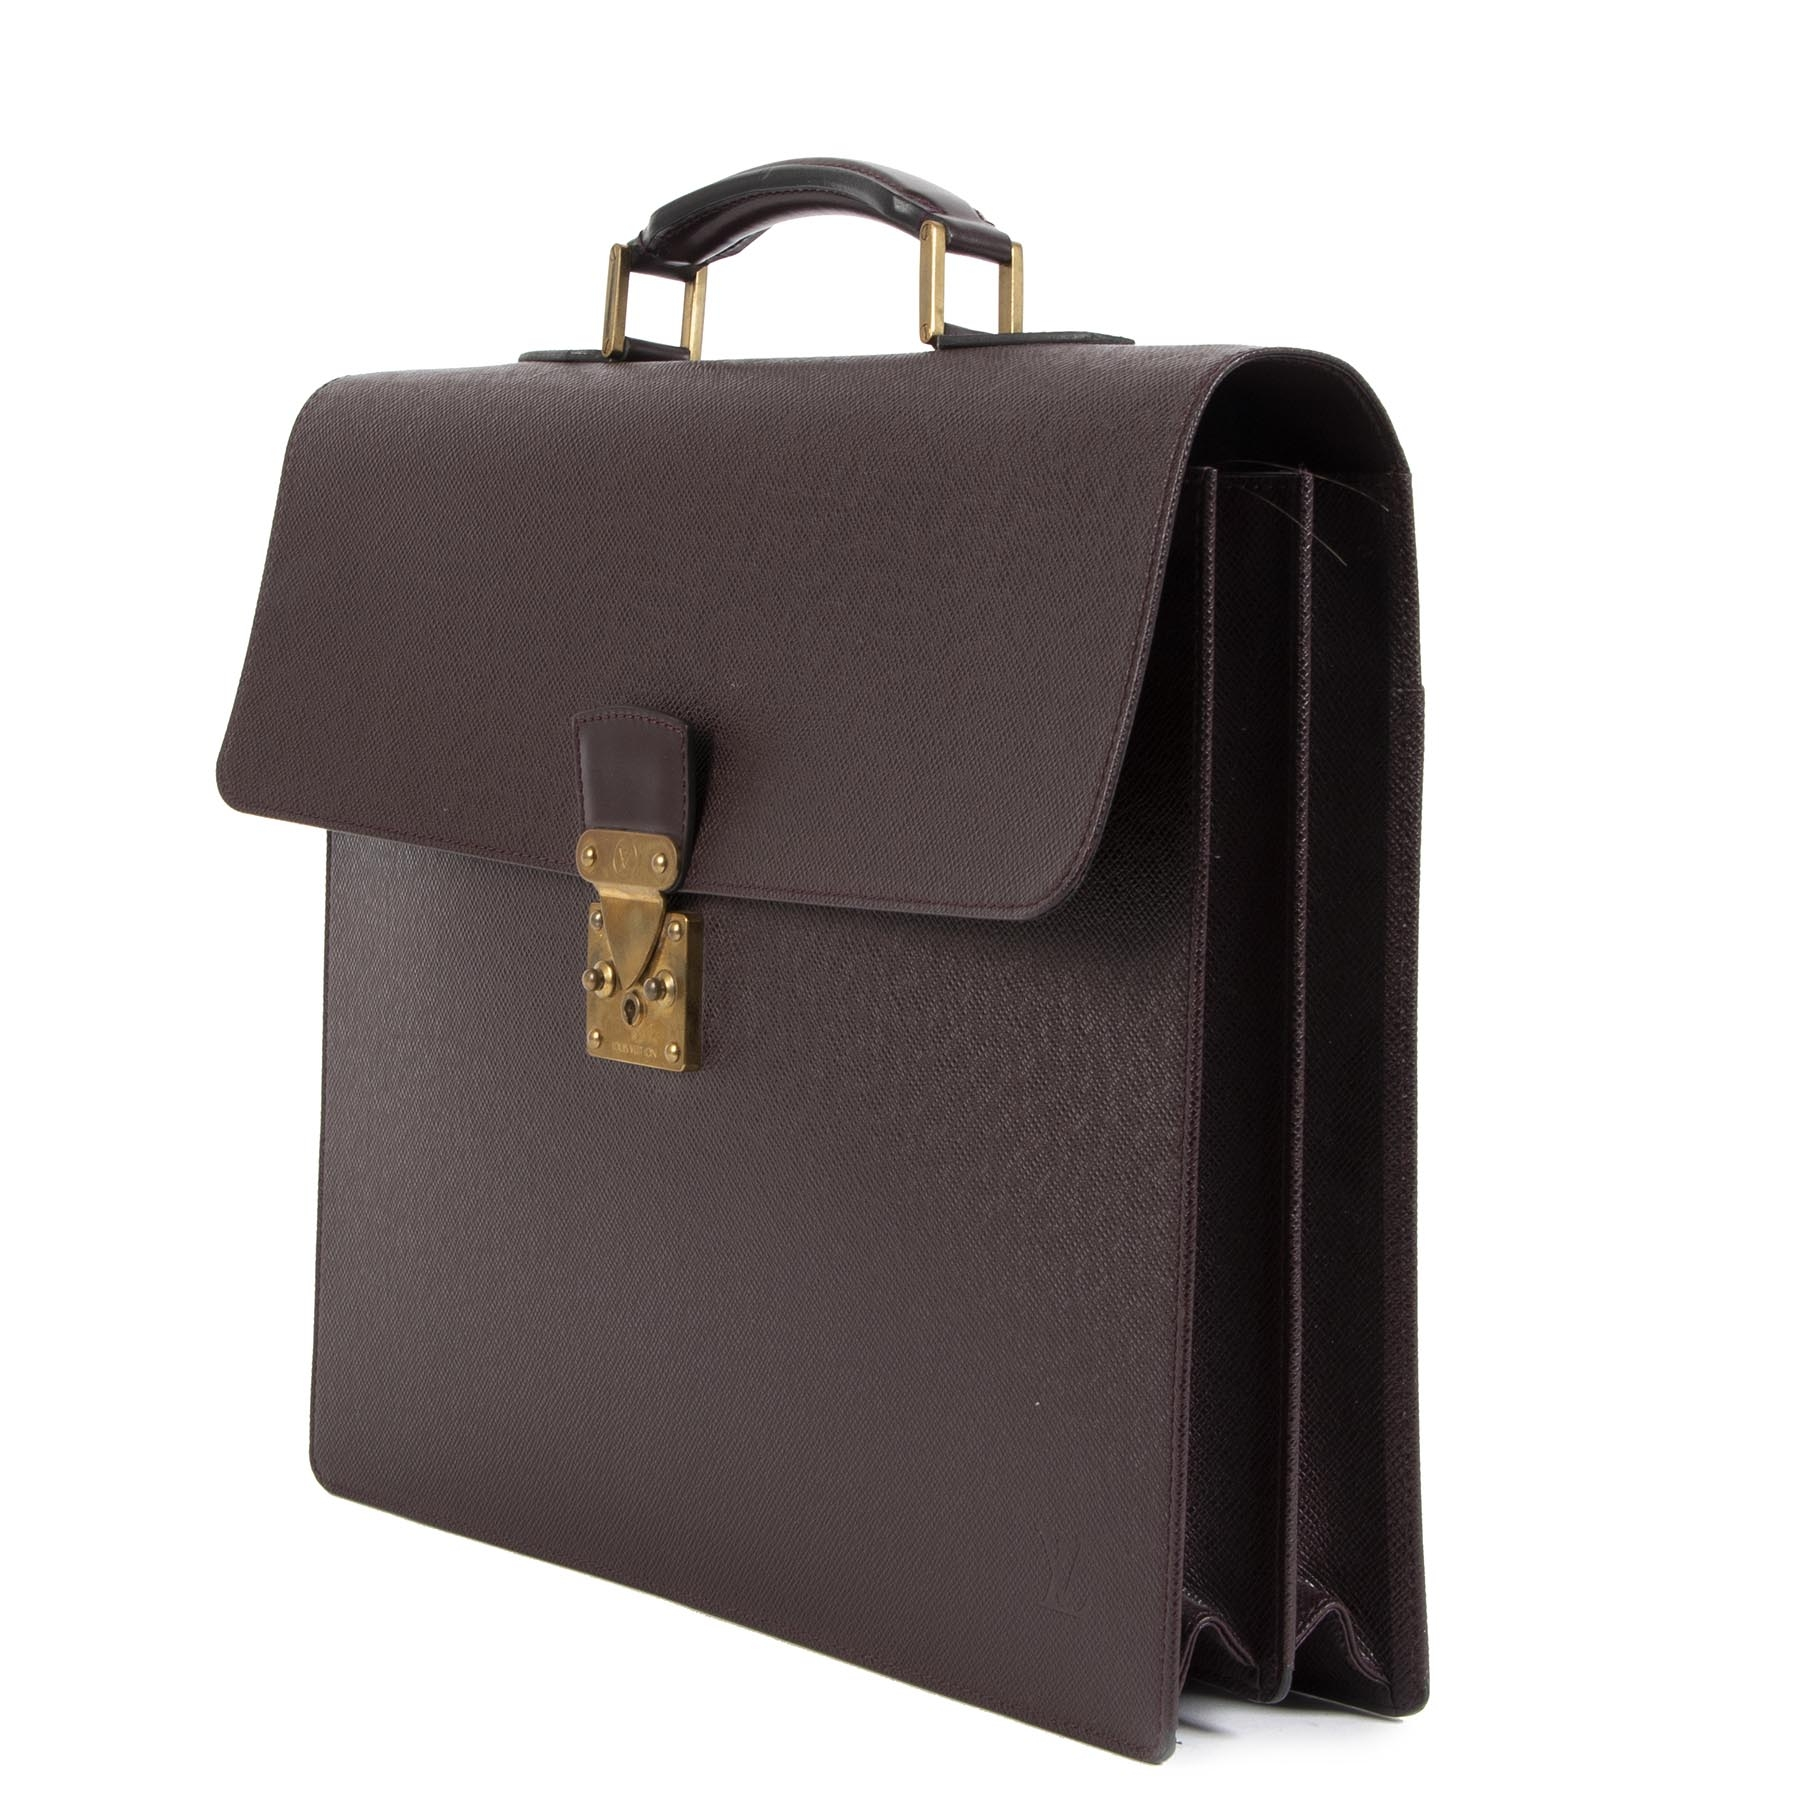 Authentieke tweedehands vintage Louis Vuitton Moskova Acajou Briefcase koop online webshop LabelLOV